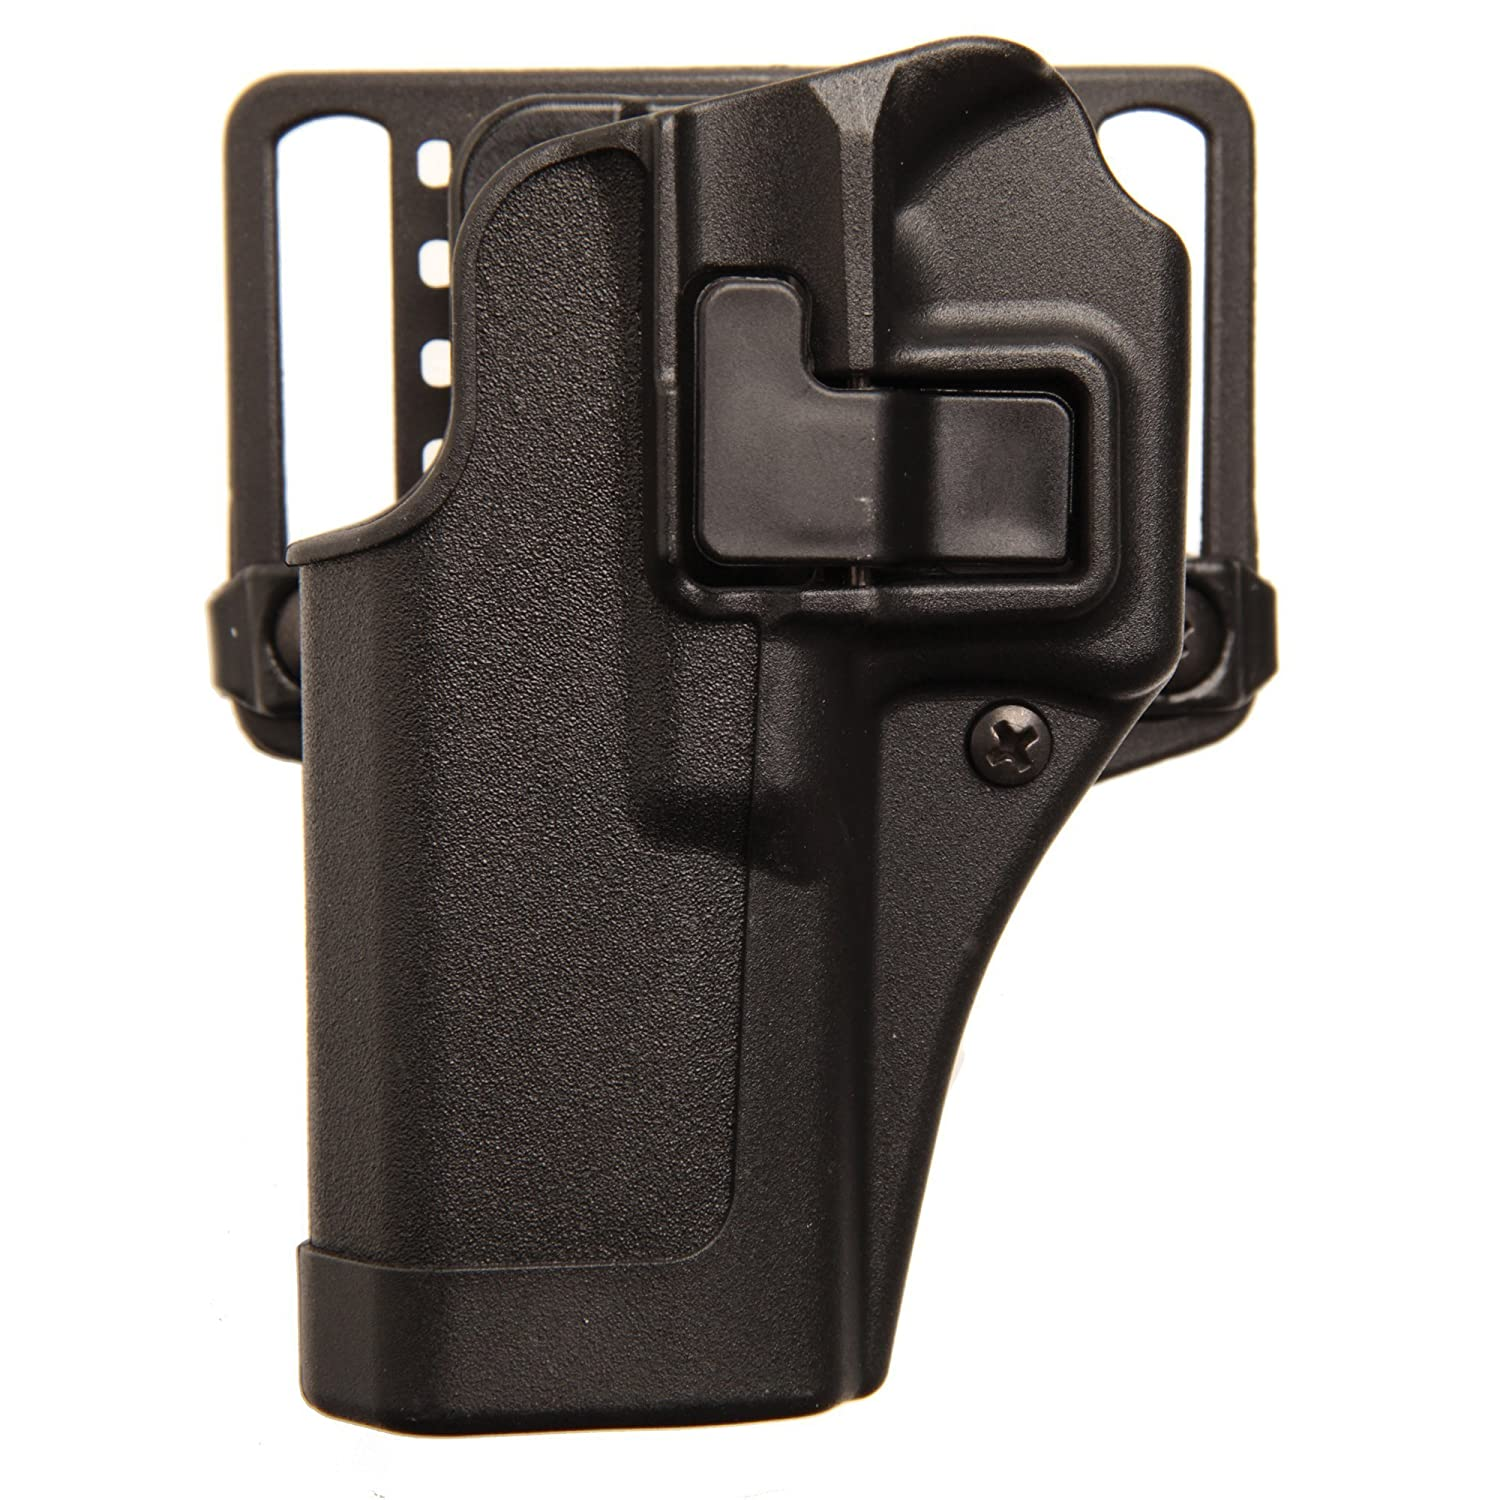 Blackhawk! SERPA Concealment Holster - Matte Finish - Best IWB Holsters